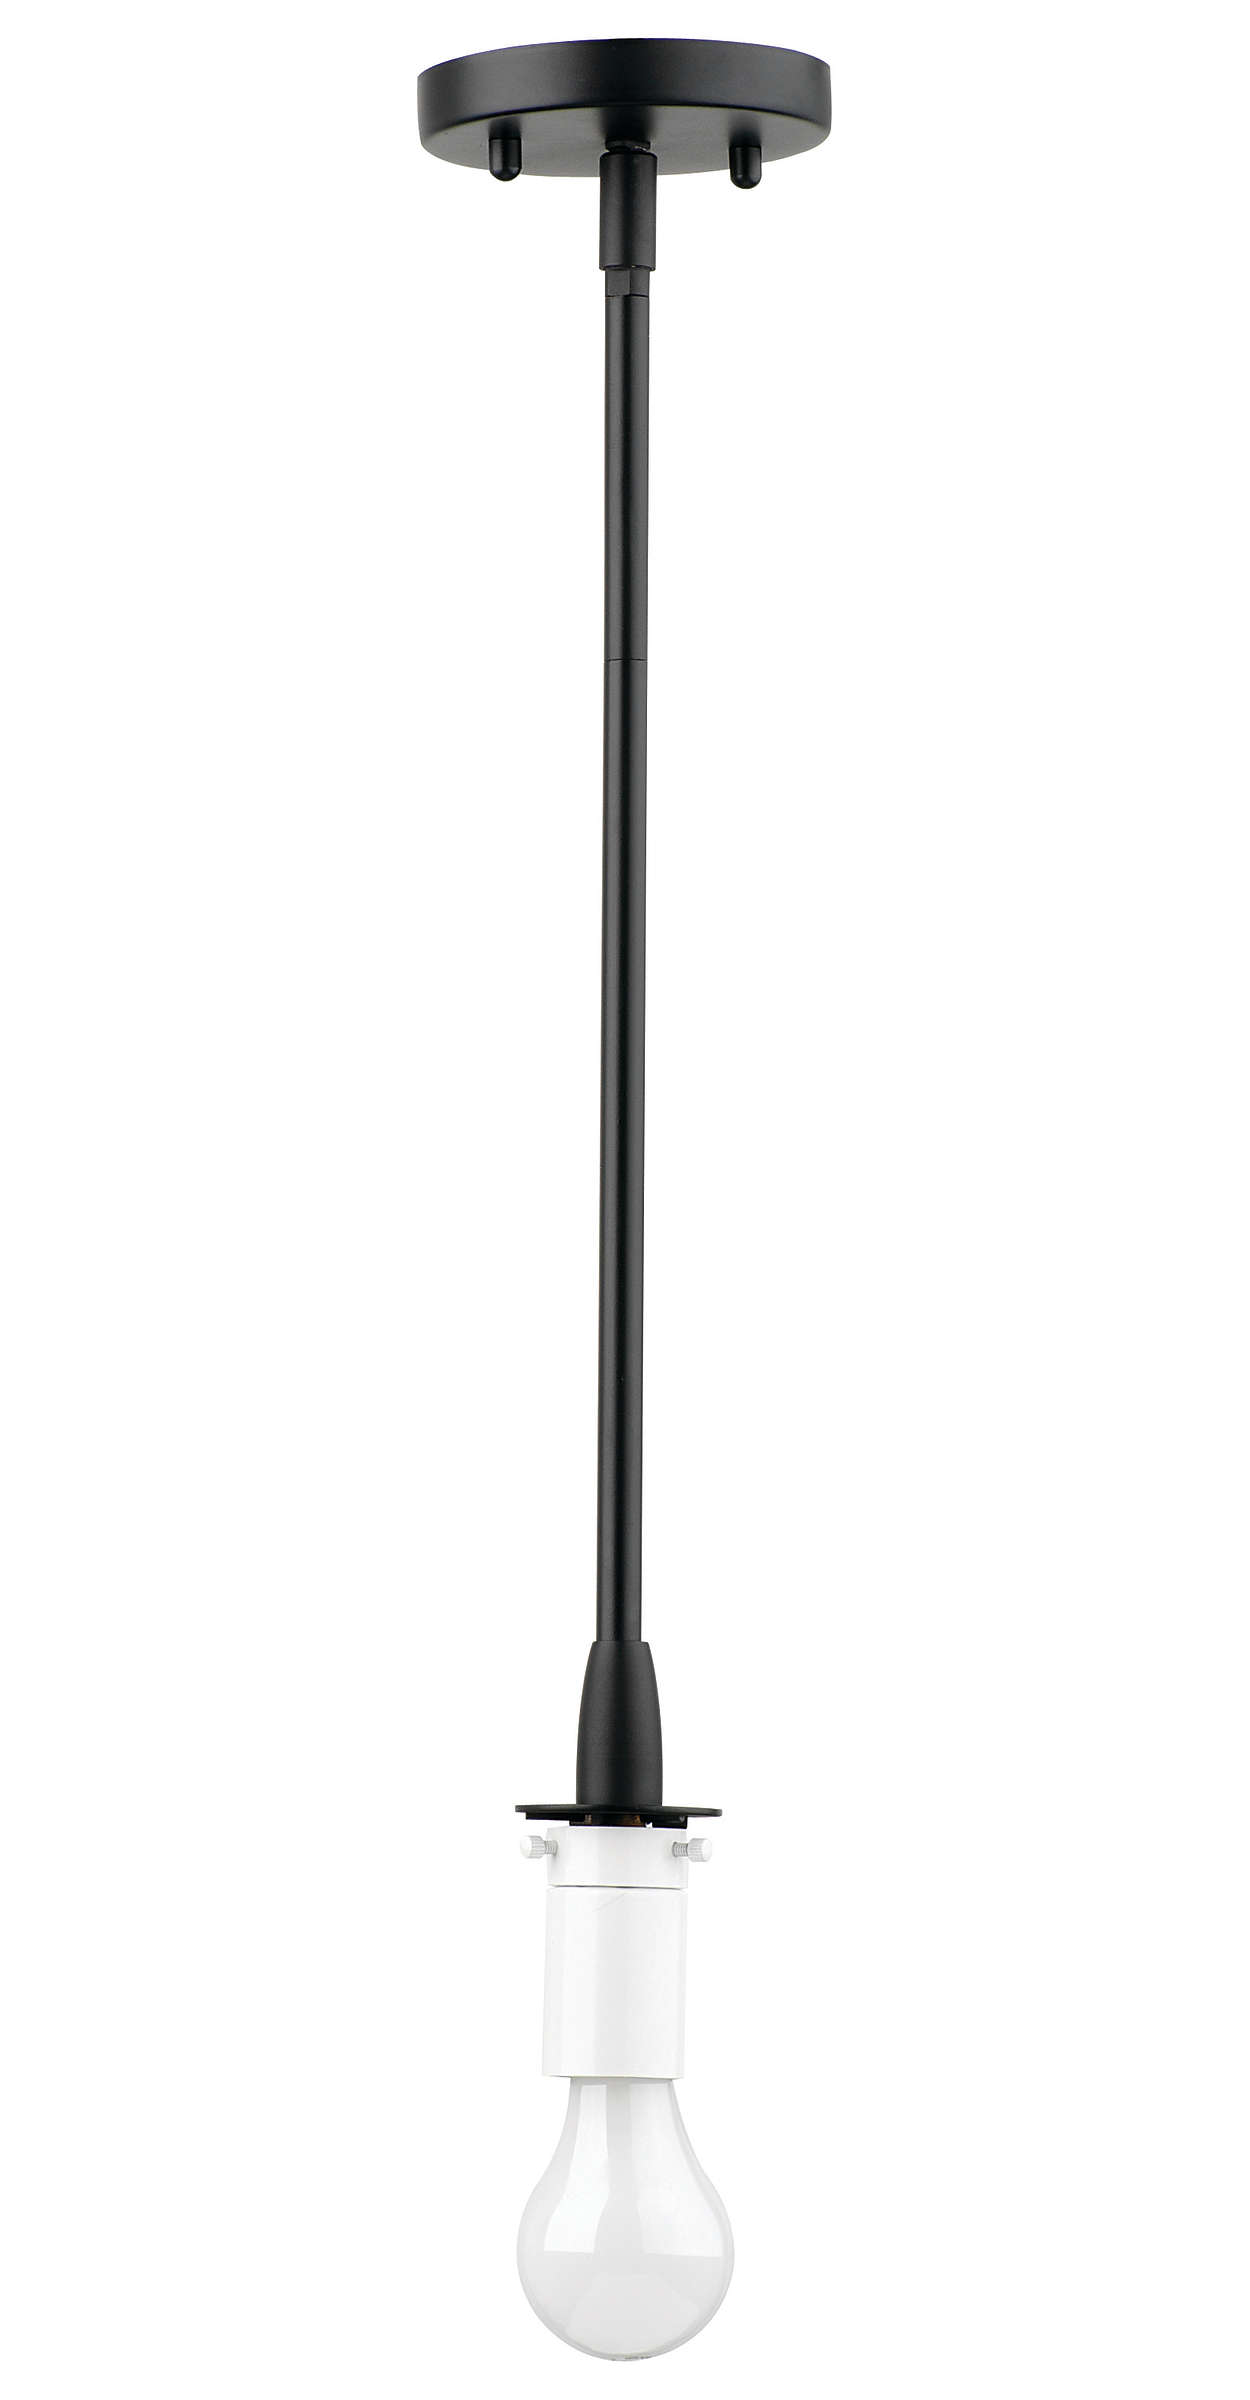 Suspension 1-light Pendant in Black finish